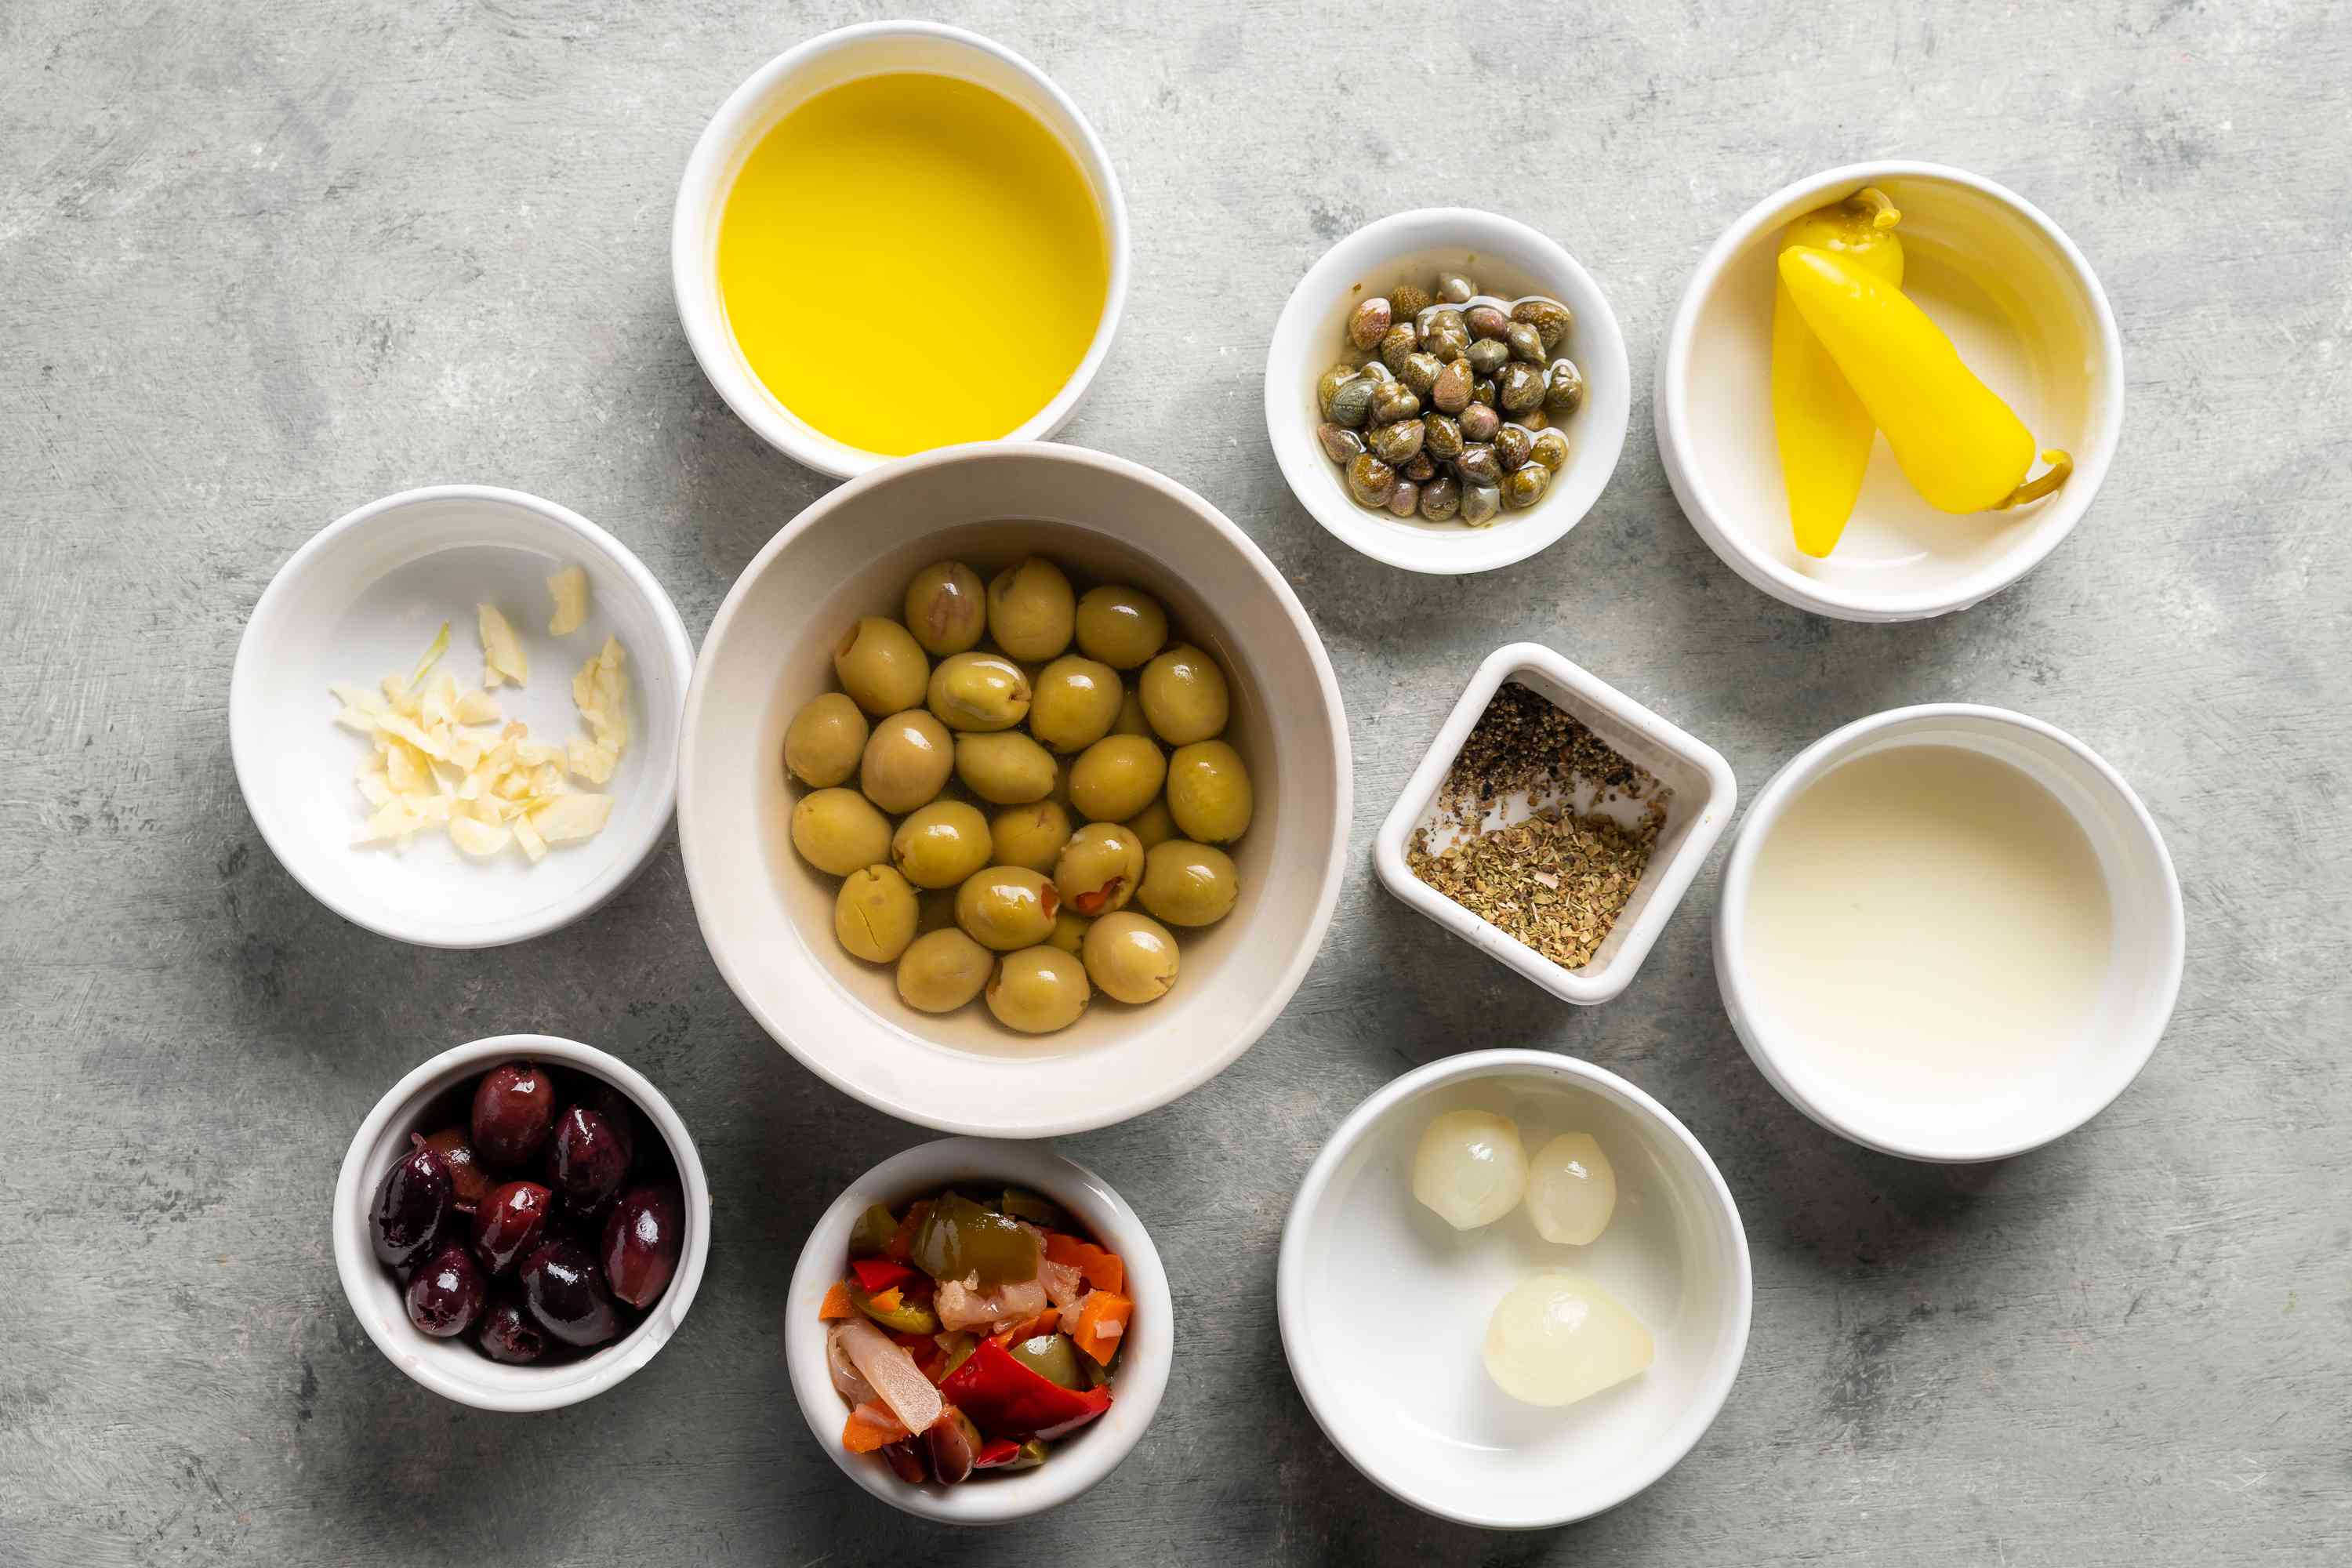 Ingredients for the best olive salad for a muffaletta